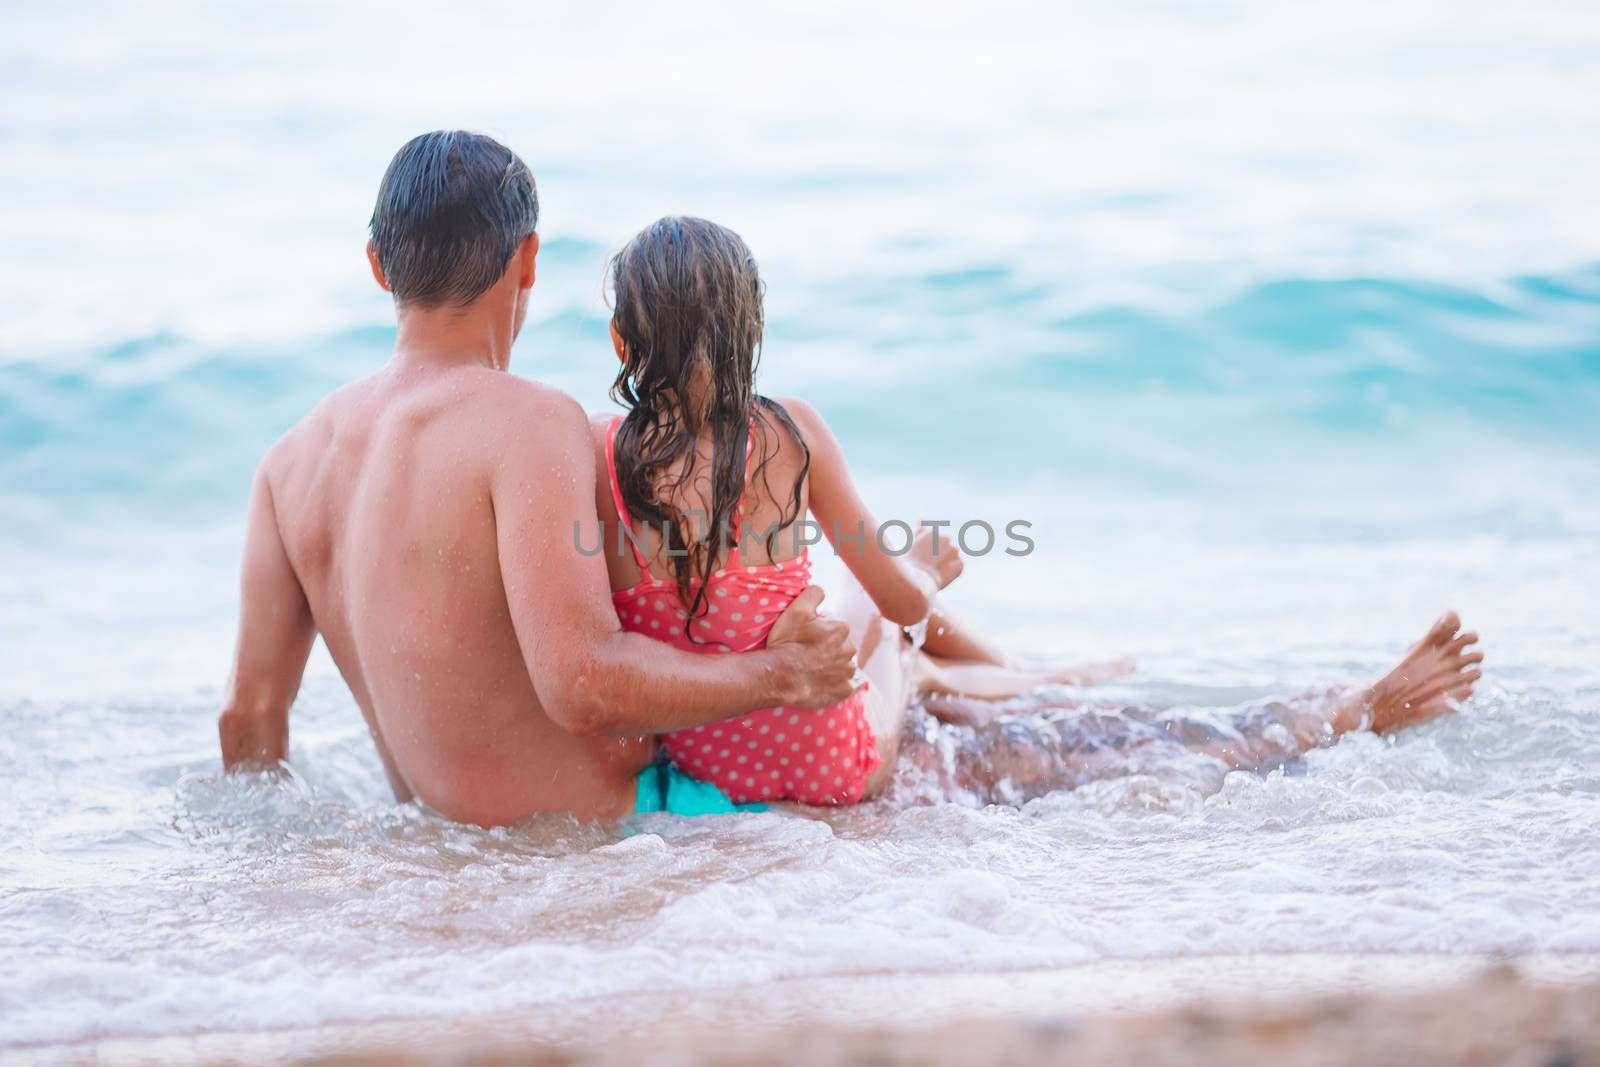 Family swim in waves. Summer family vacation